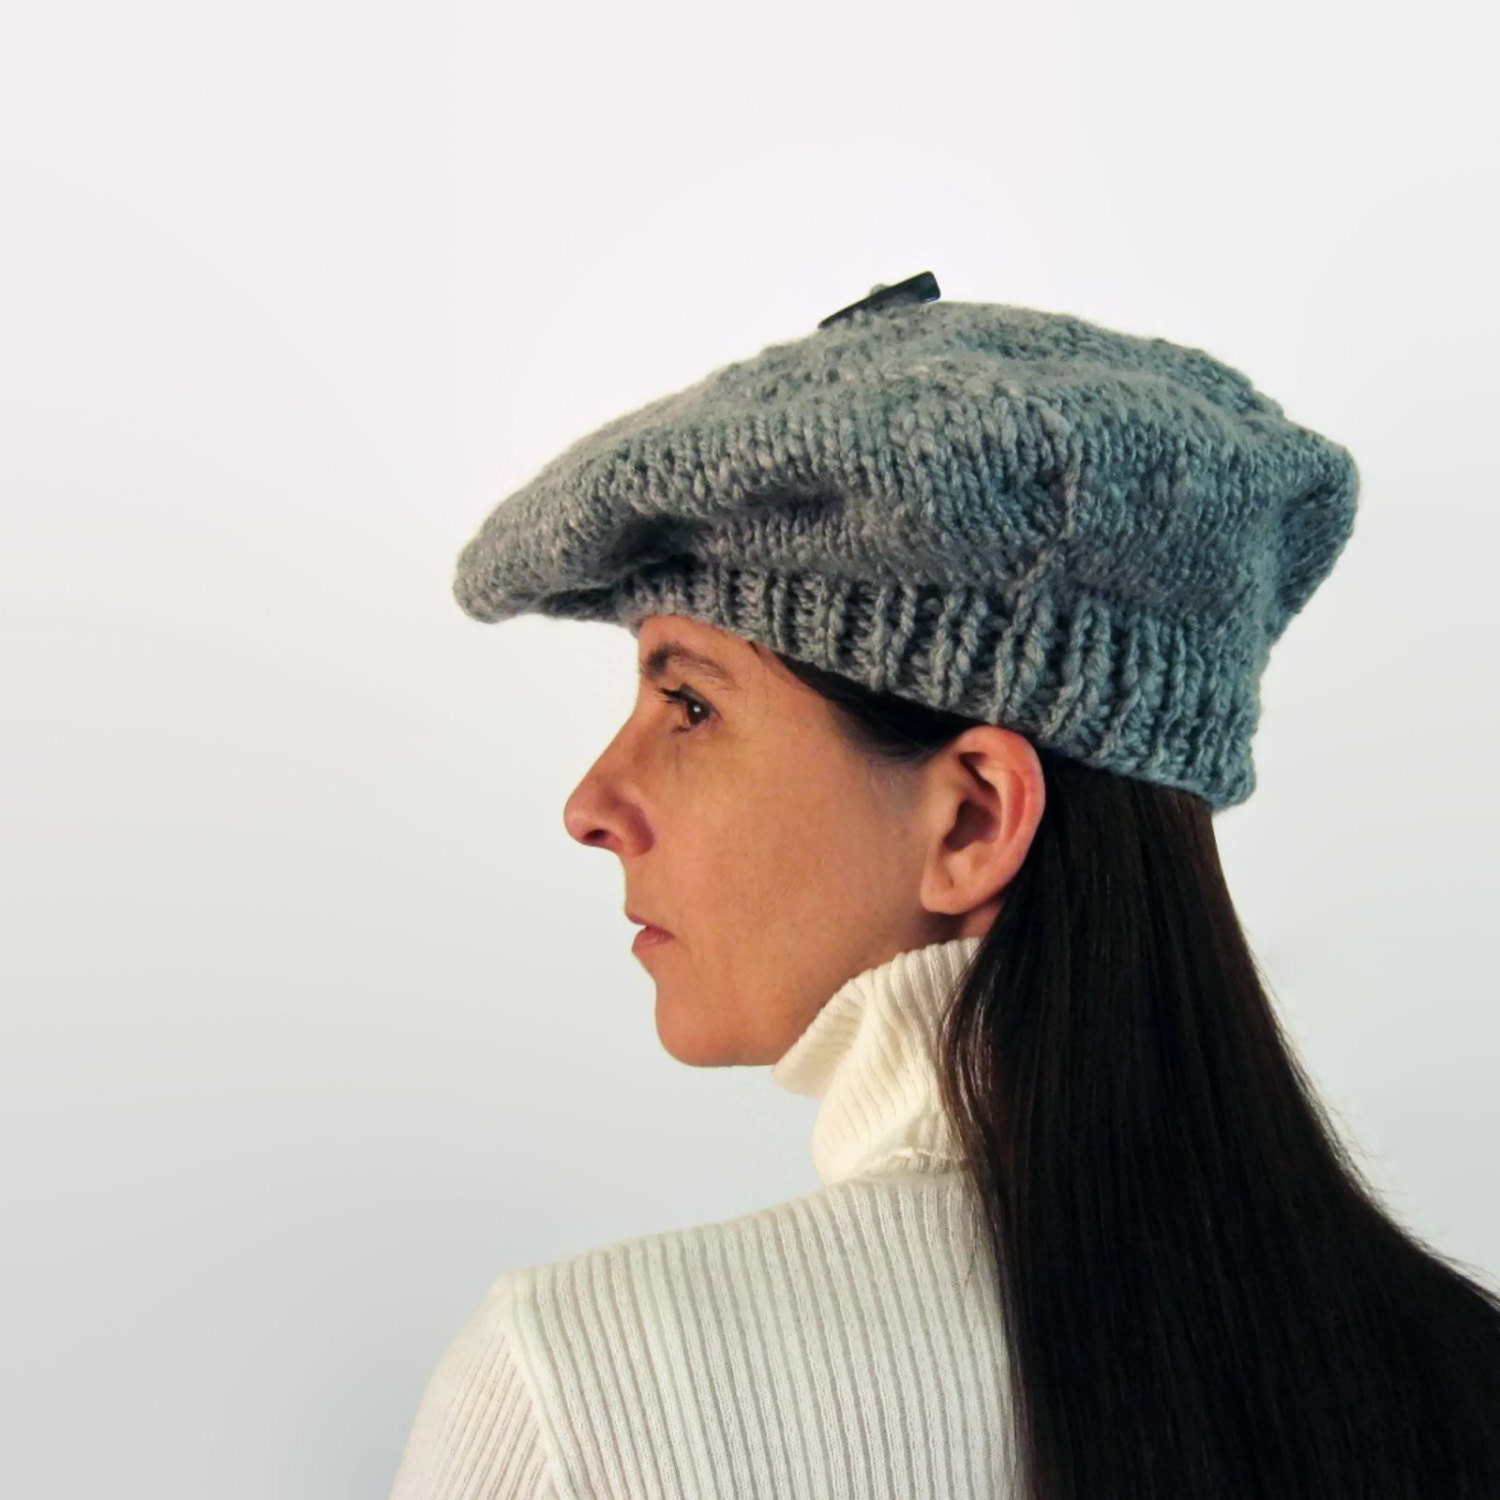 cf0d25fcff5a0 ... Hat Costume Accessory Wool Beret Tam  Gray Wool French Beret Tam O  Shanter Hand Knitted Soft